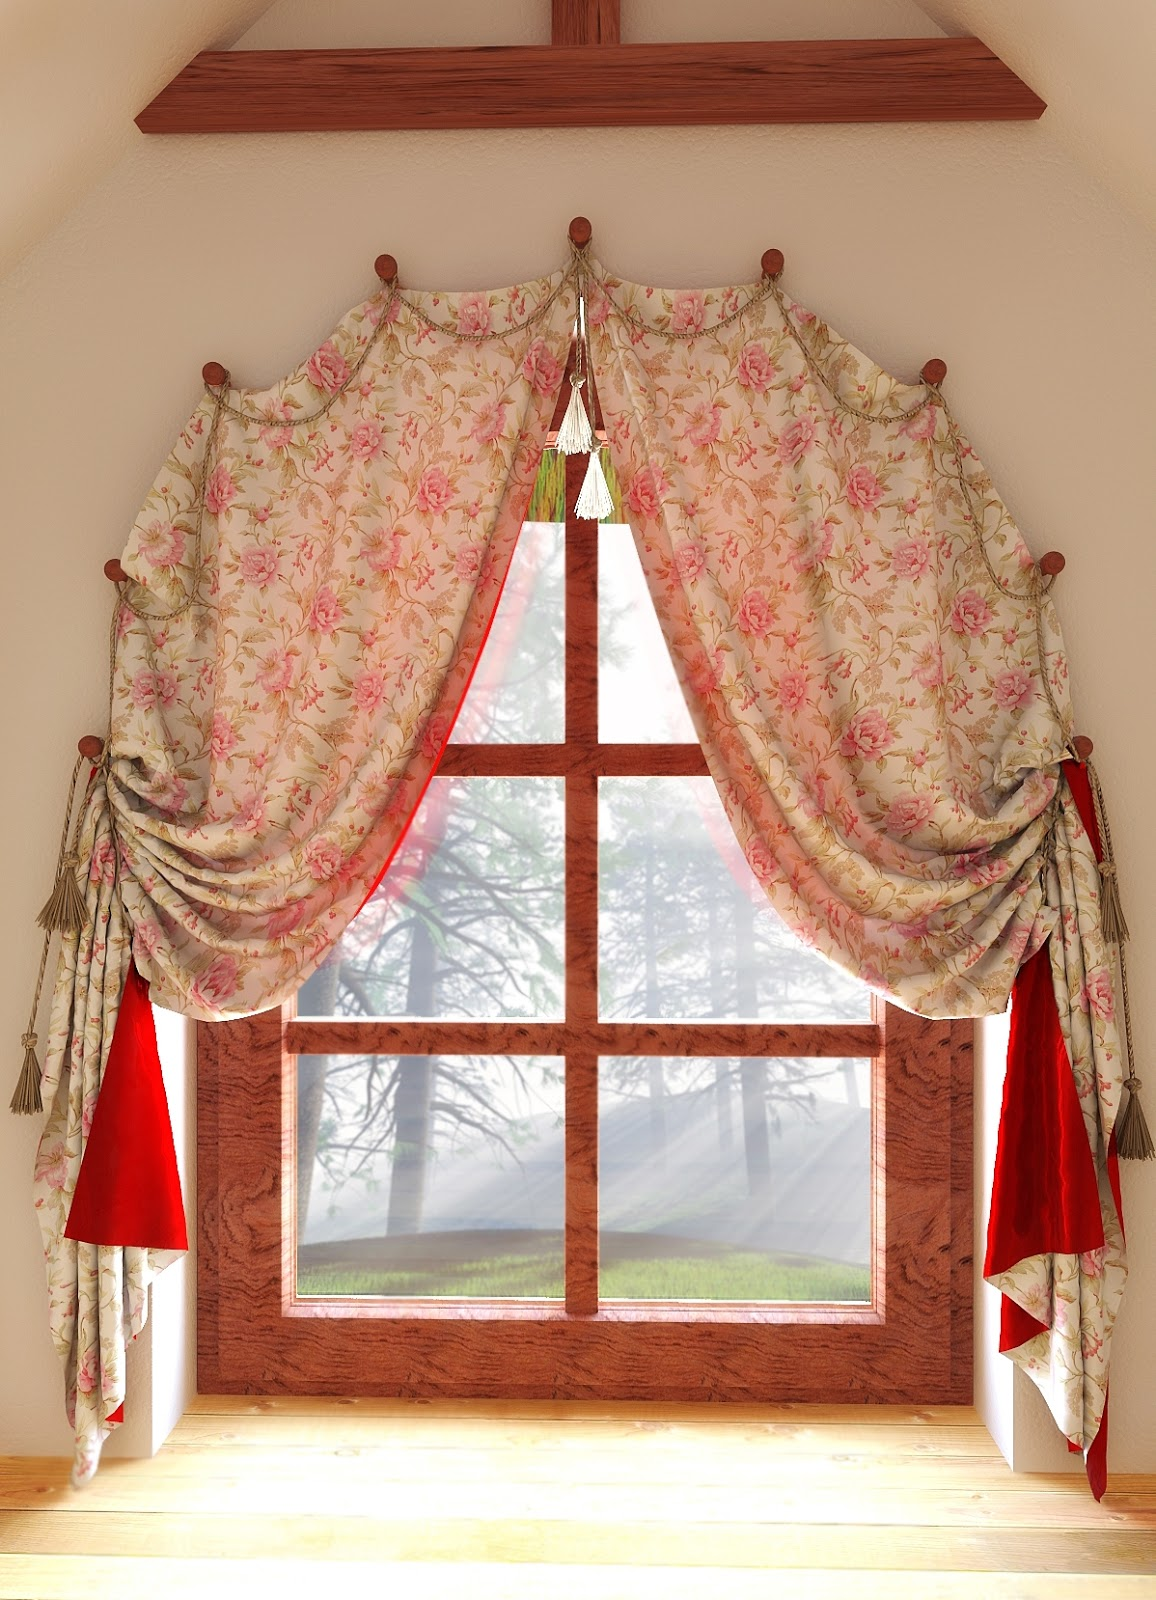 How To Measure Curtains For Arched Windows | Curtain ...